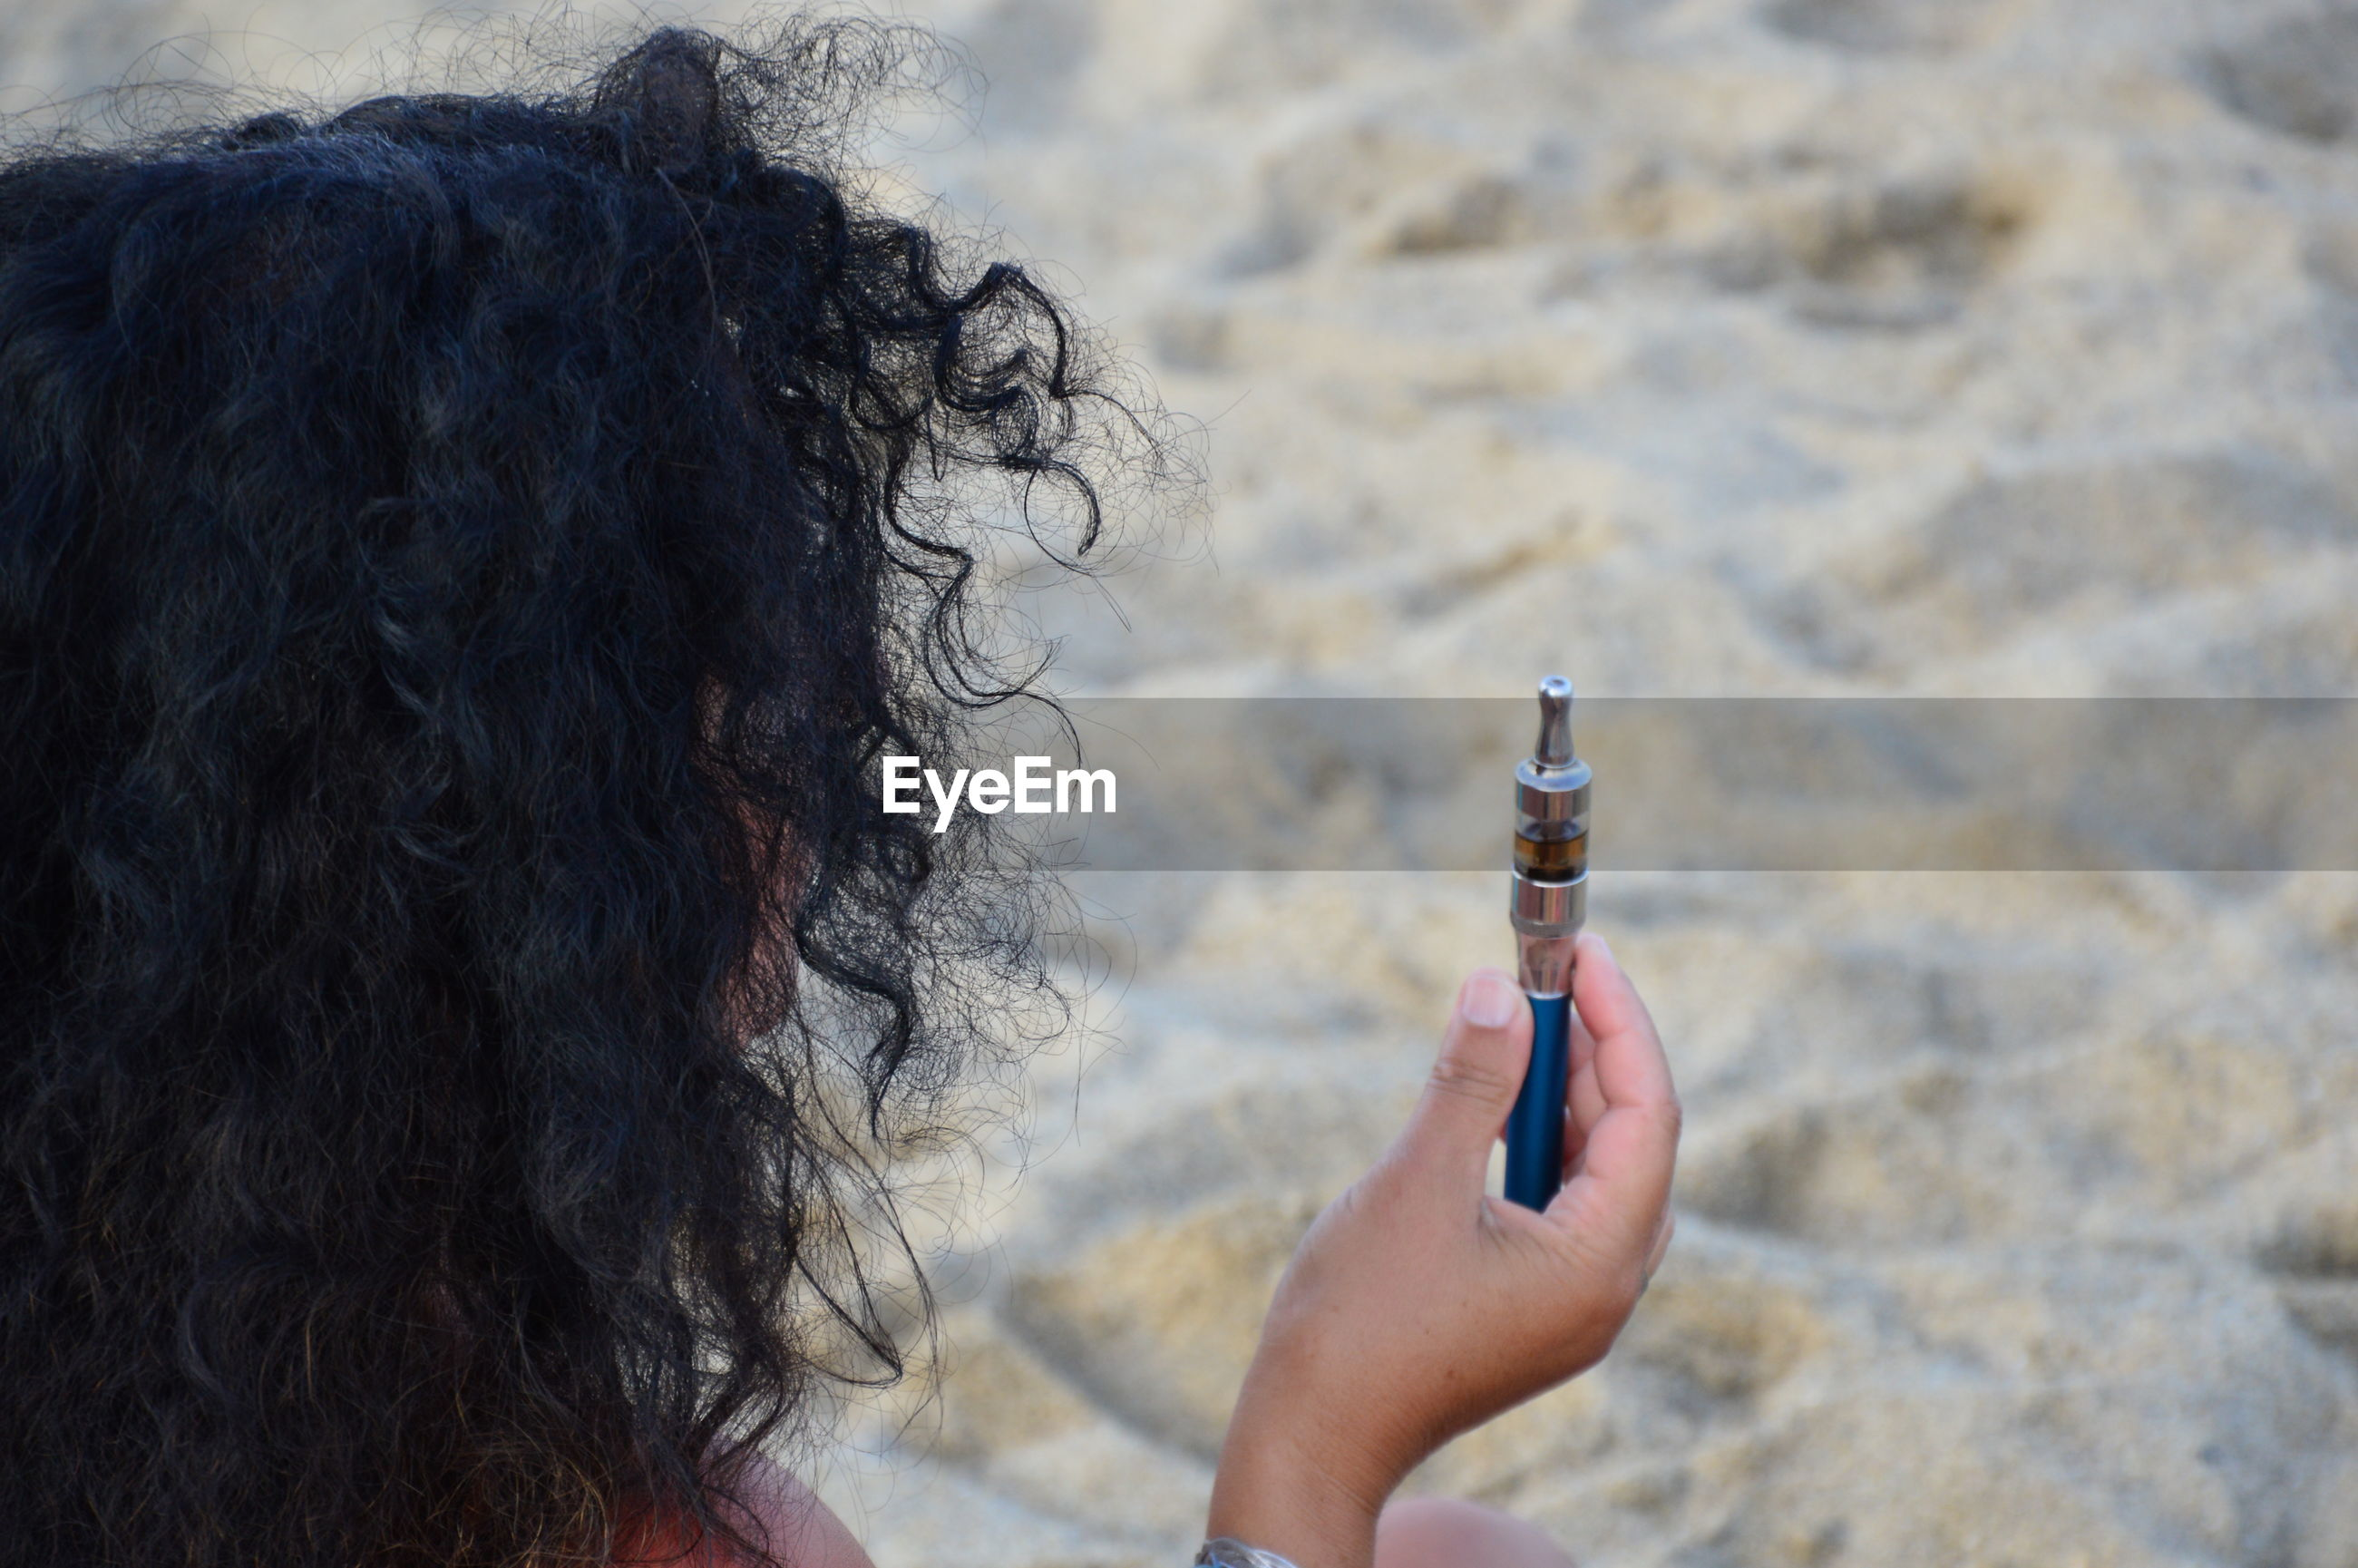 Rear view of woman holding electronic cigarette at beach